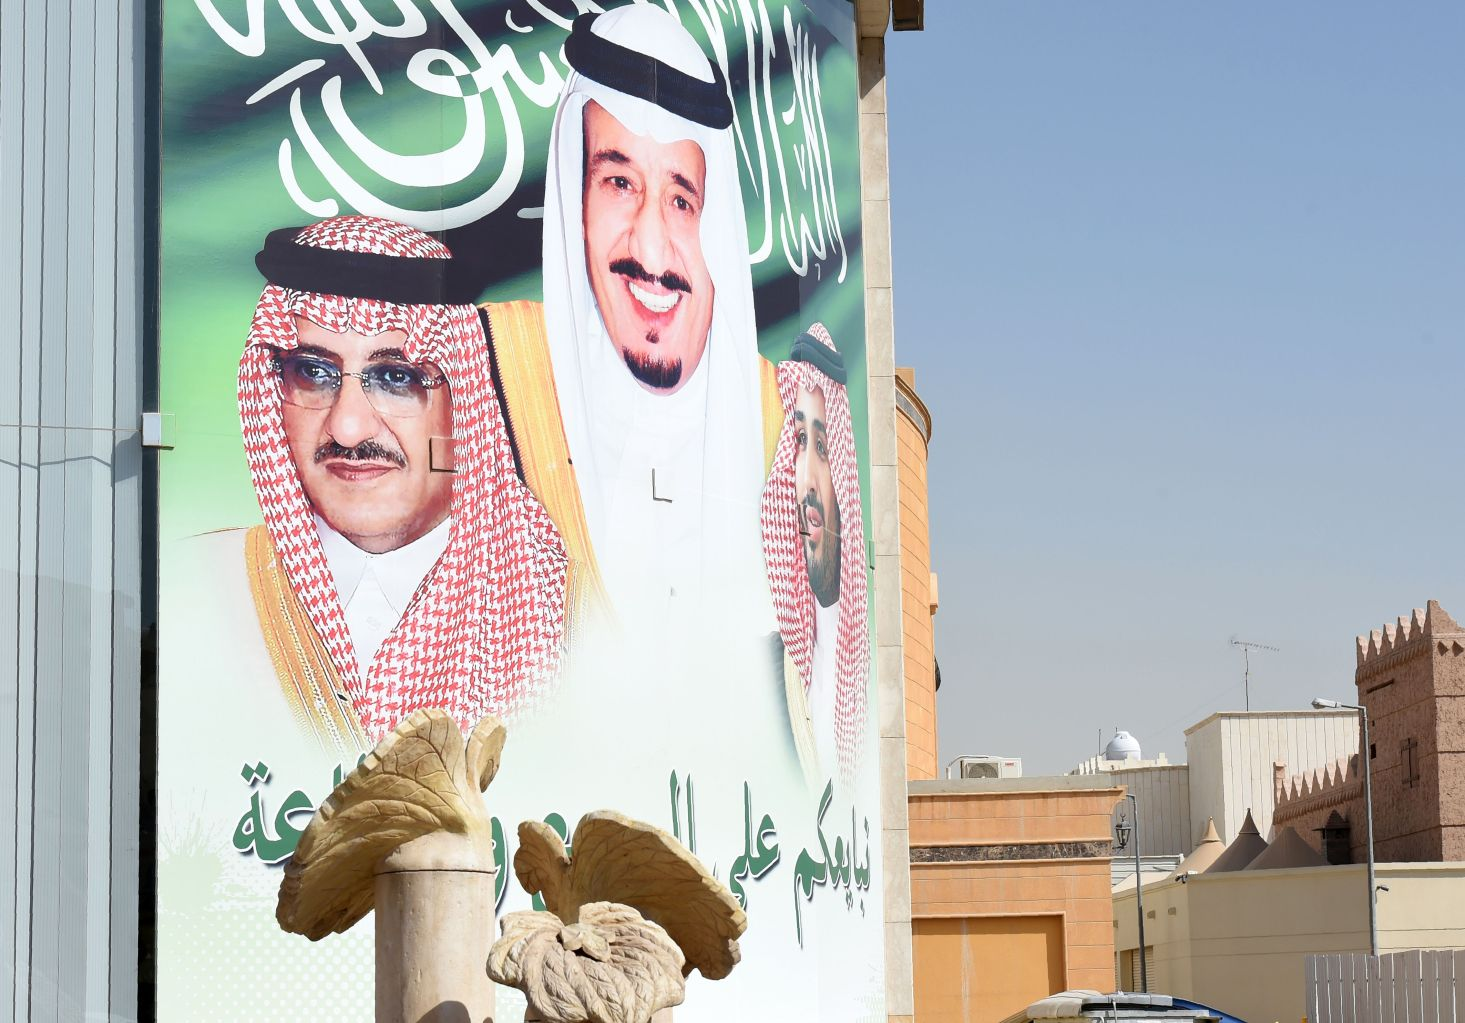 A picture taken on January 17, 2016 in the Saudi capital Riyadh shows a giant poster on a building bearing a portrait of Saudi King Salman bin Abdulaziz (R) and Crown Prince and Interior Minister Mohammed Bin Nayef. When Saudi Arabia's king Abdullah died a year ago on January 23, his subjects expected their country to keep a steady course under new King Salman. / AFP / Fayez Nureldine / TO GO WITH AFP STORY BY IAN TIMBERLAKE (Photo credit should read FAYEZ NURELDINE/AFP/Getty Images)